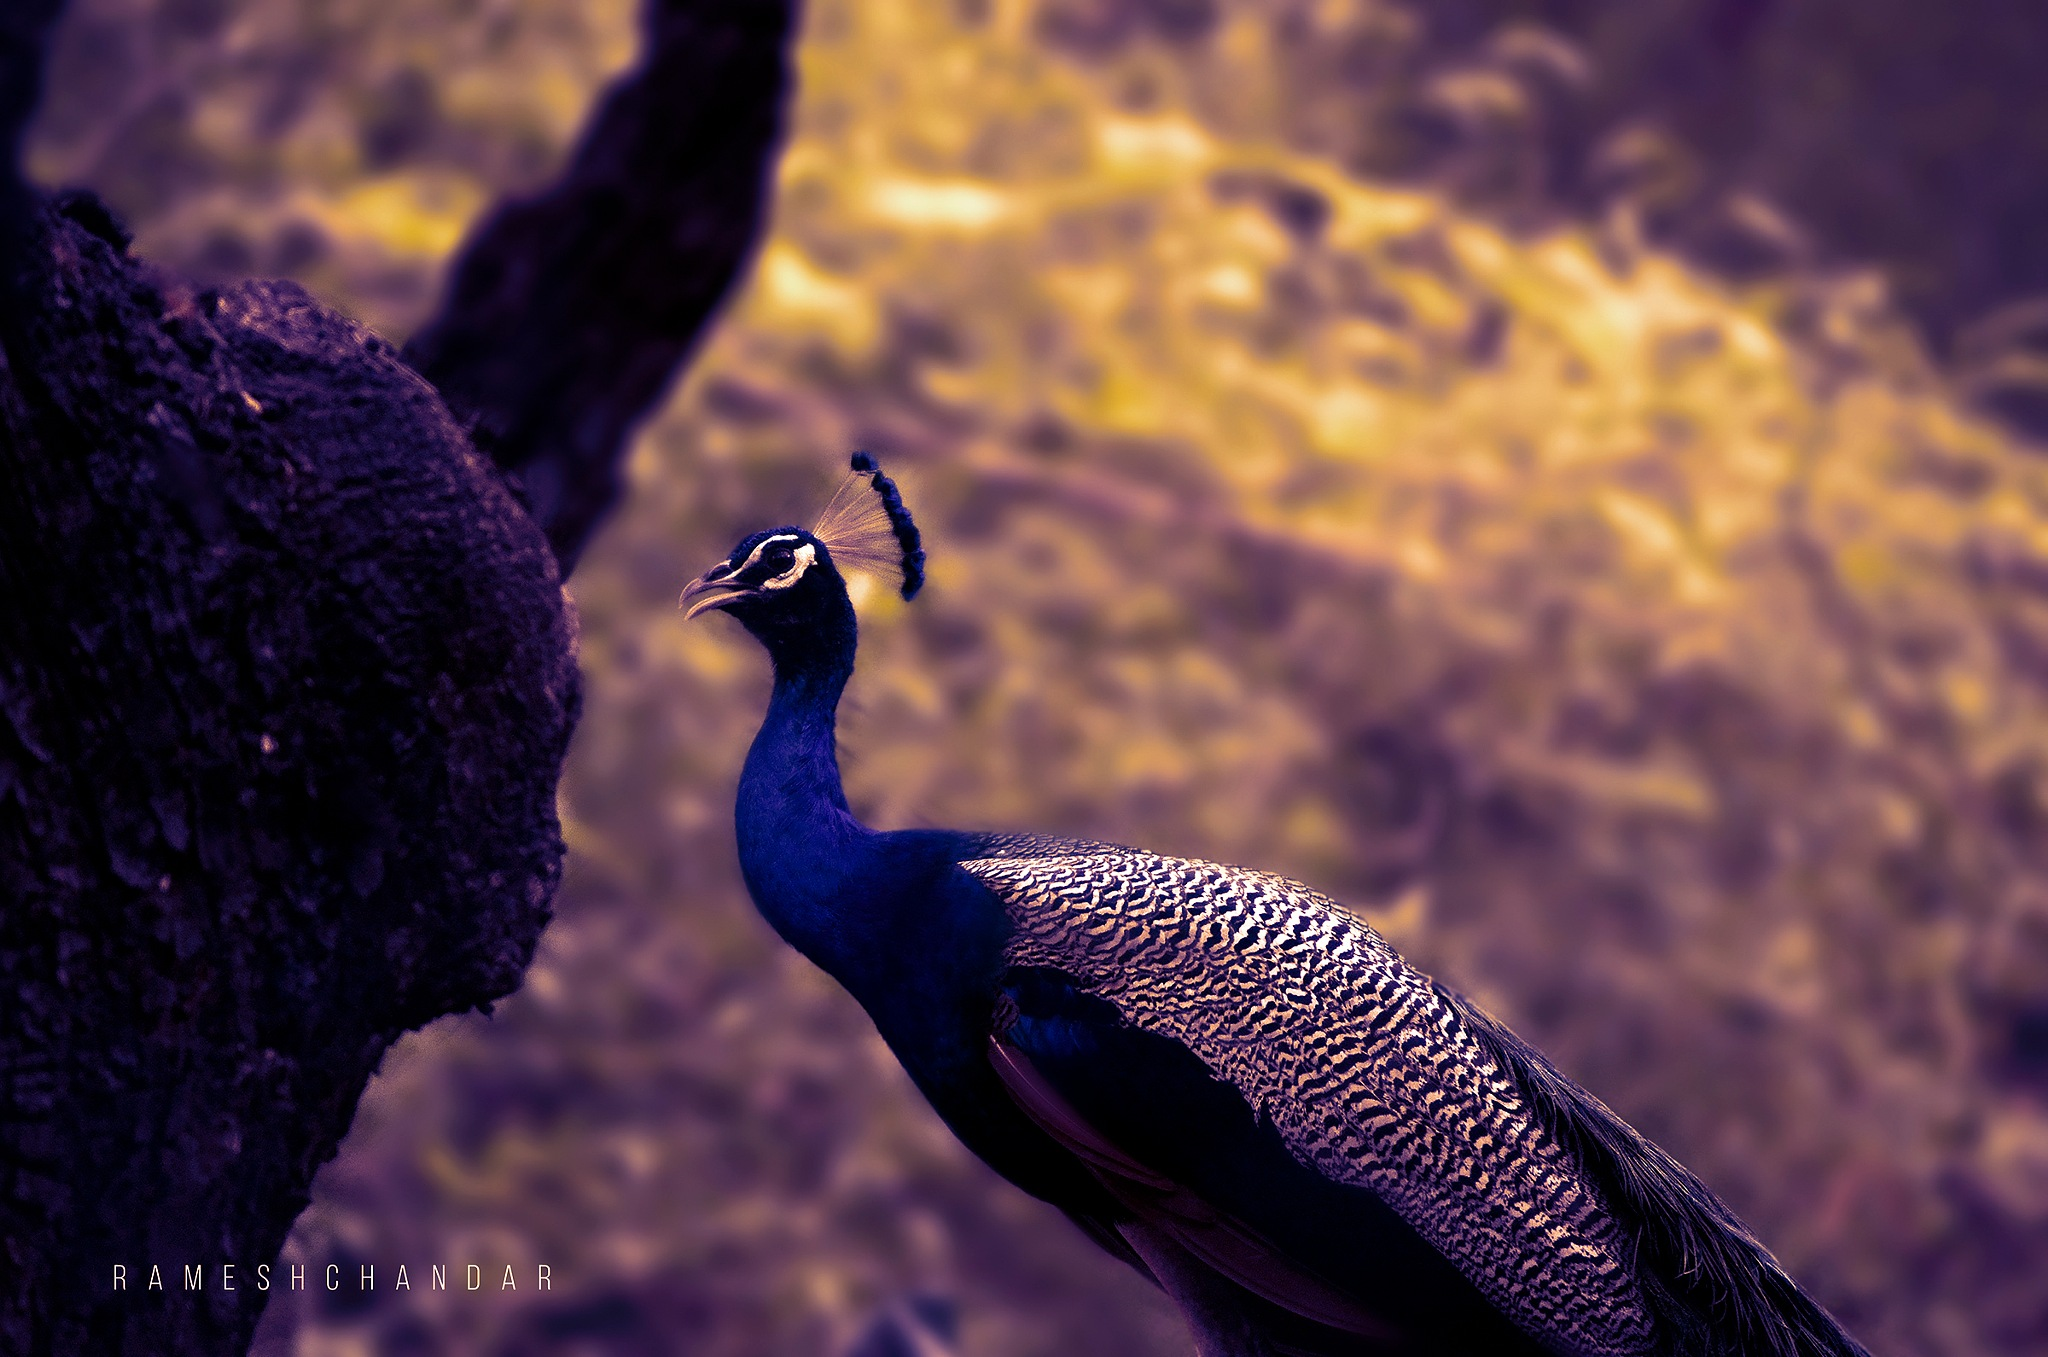 The Most Beautiful Peacock by rameshchandarr